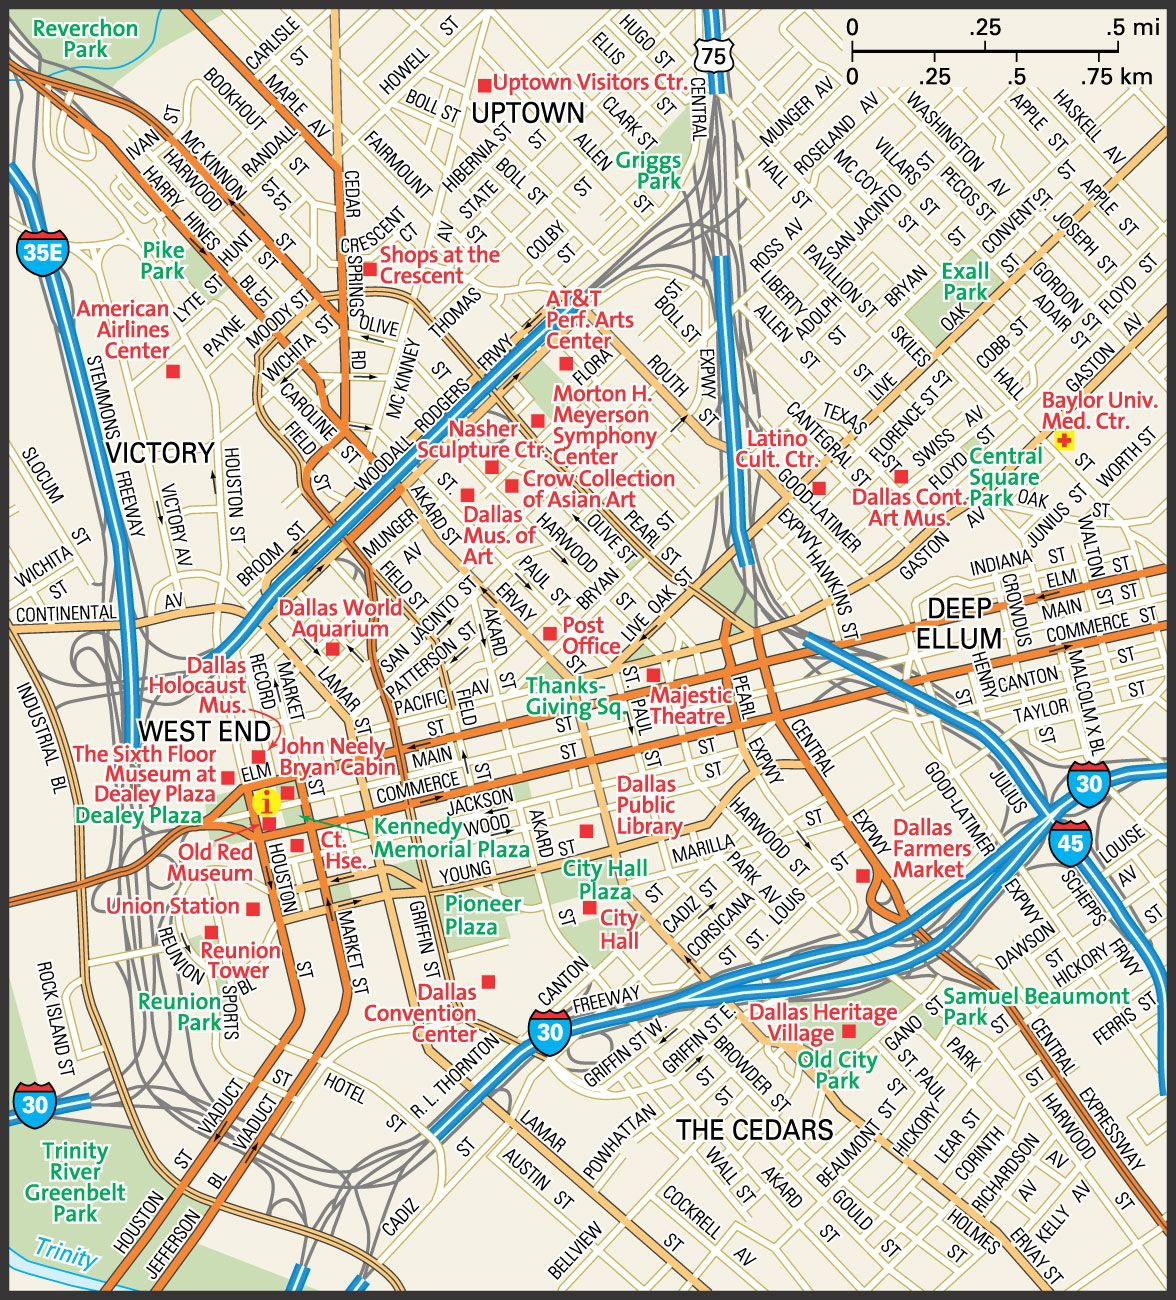 Downtown Dallas Map and Guide downtown Dallas street map Travel